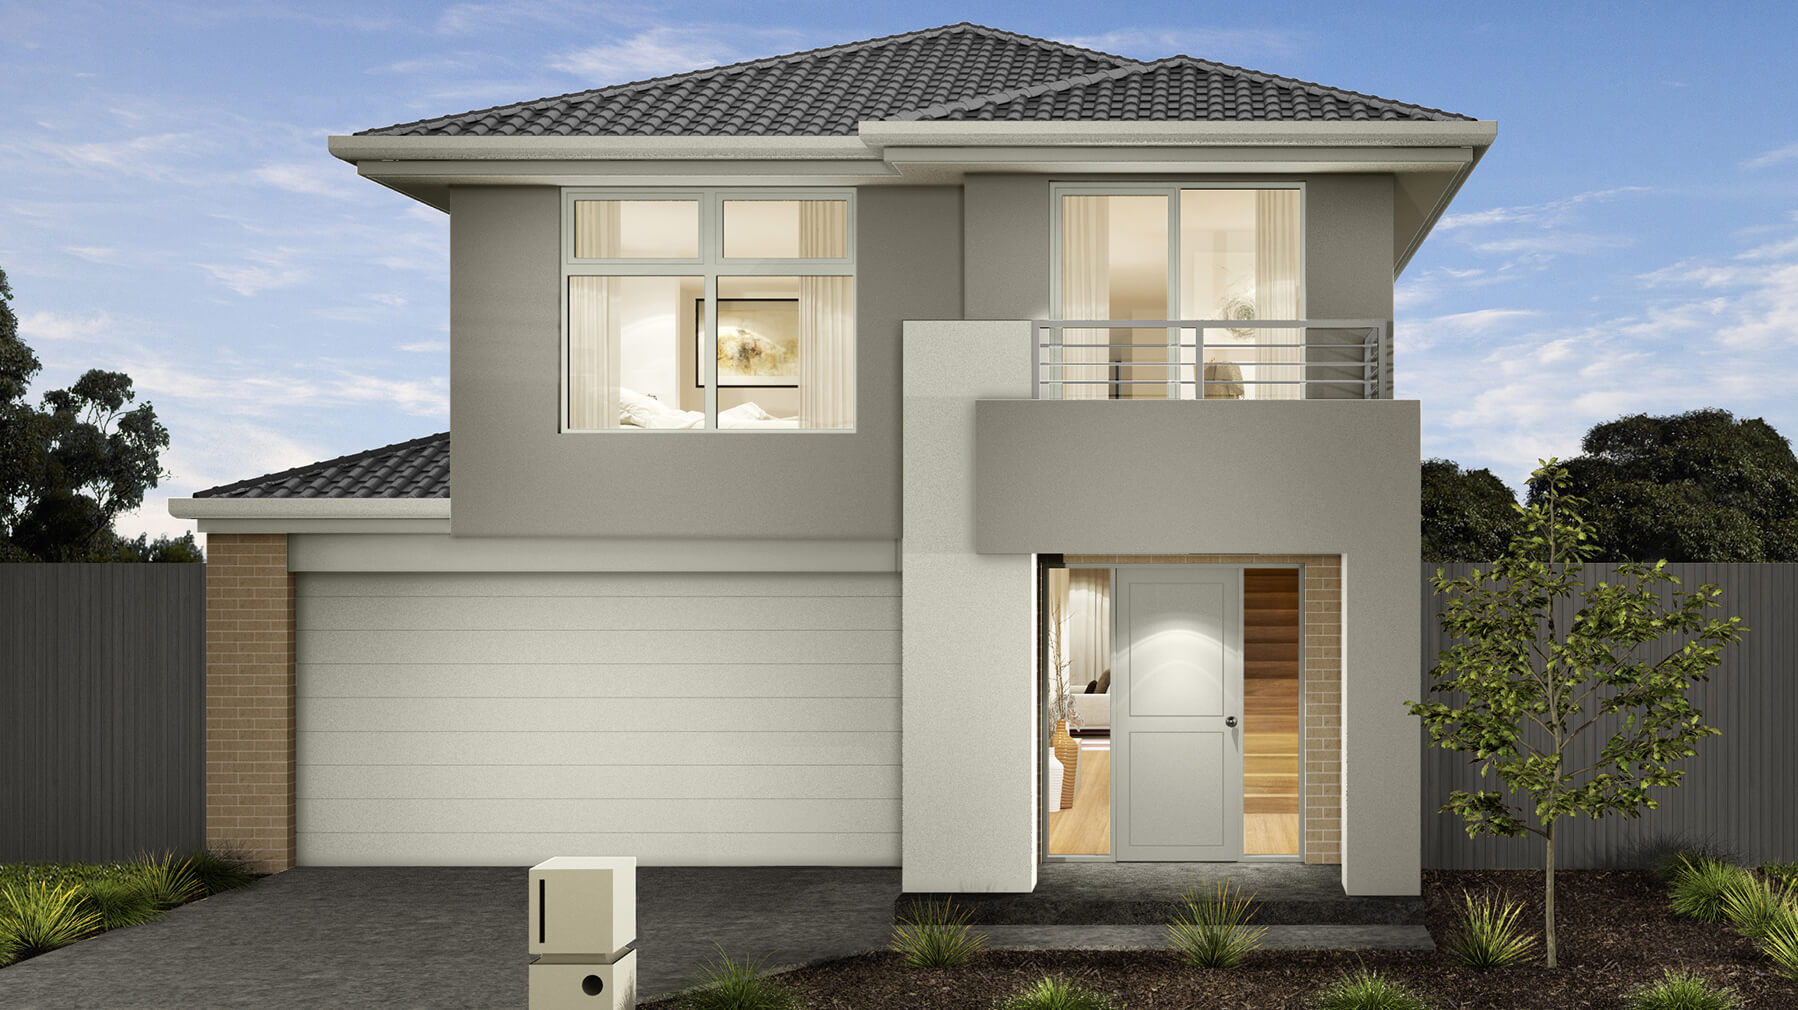 EASYLIVING BRIDGEWATER 10.5 (BUILD OVER) Exterior Image 1